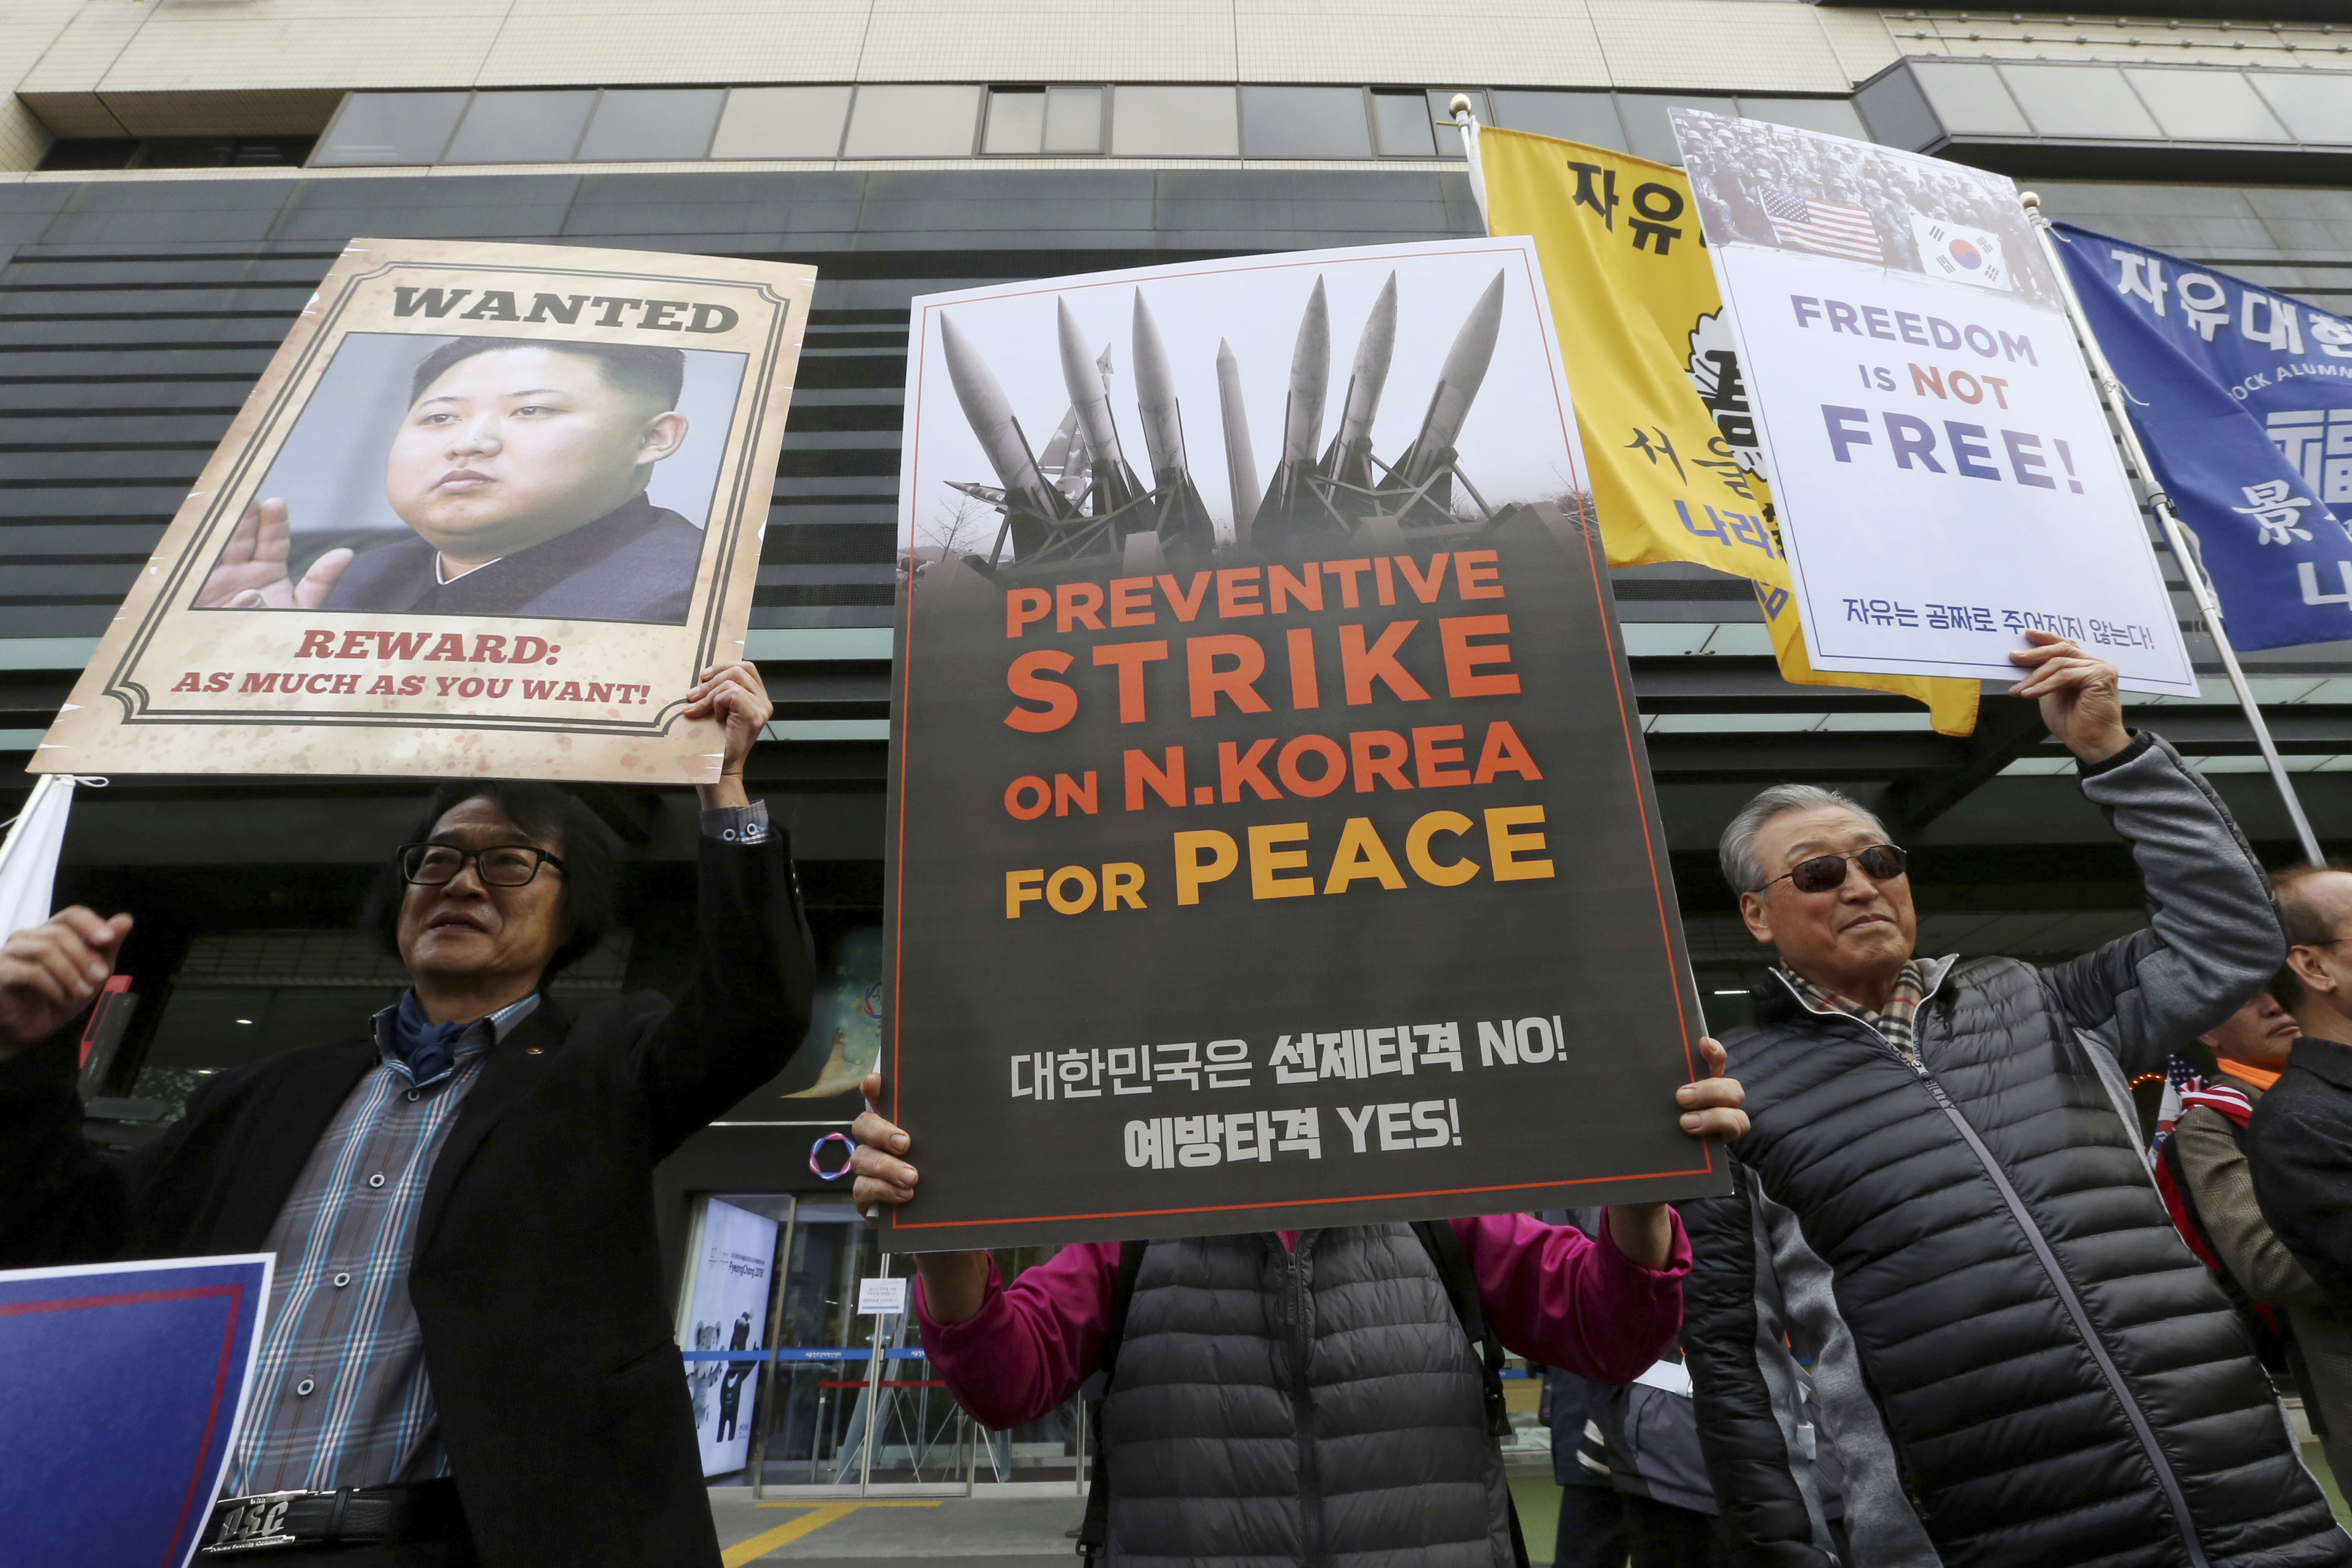 South Koreans protest against North Korea and Kim Jong Un during a rally near the U.S. Embassy in Seoul, South Korea, Nov. 6, 2017.